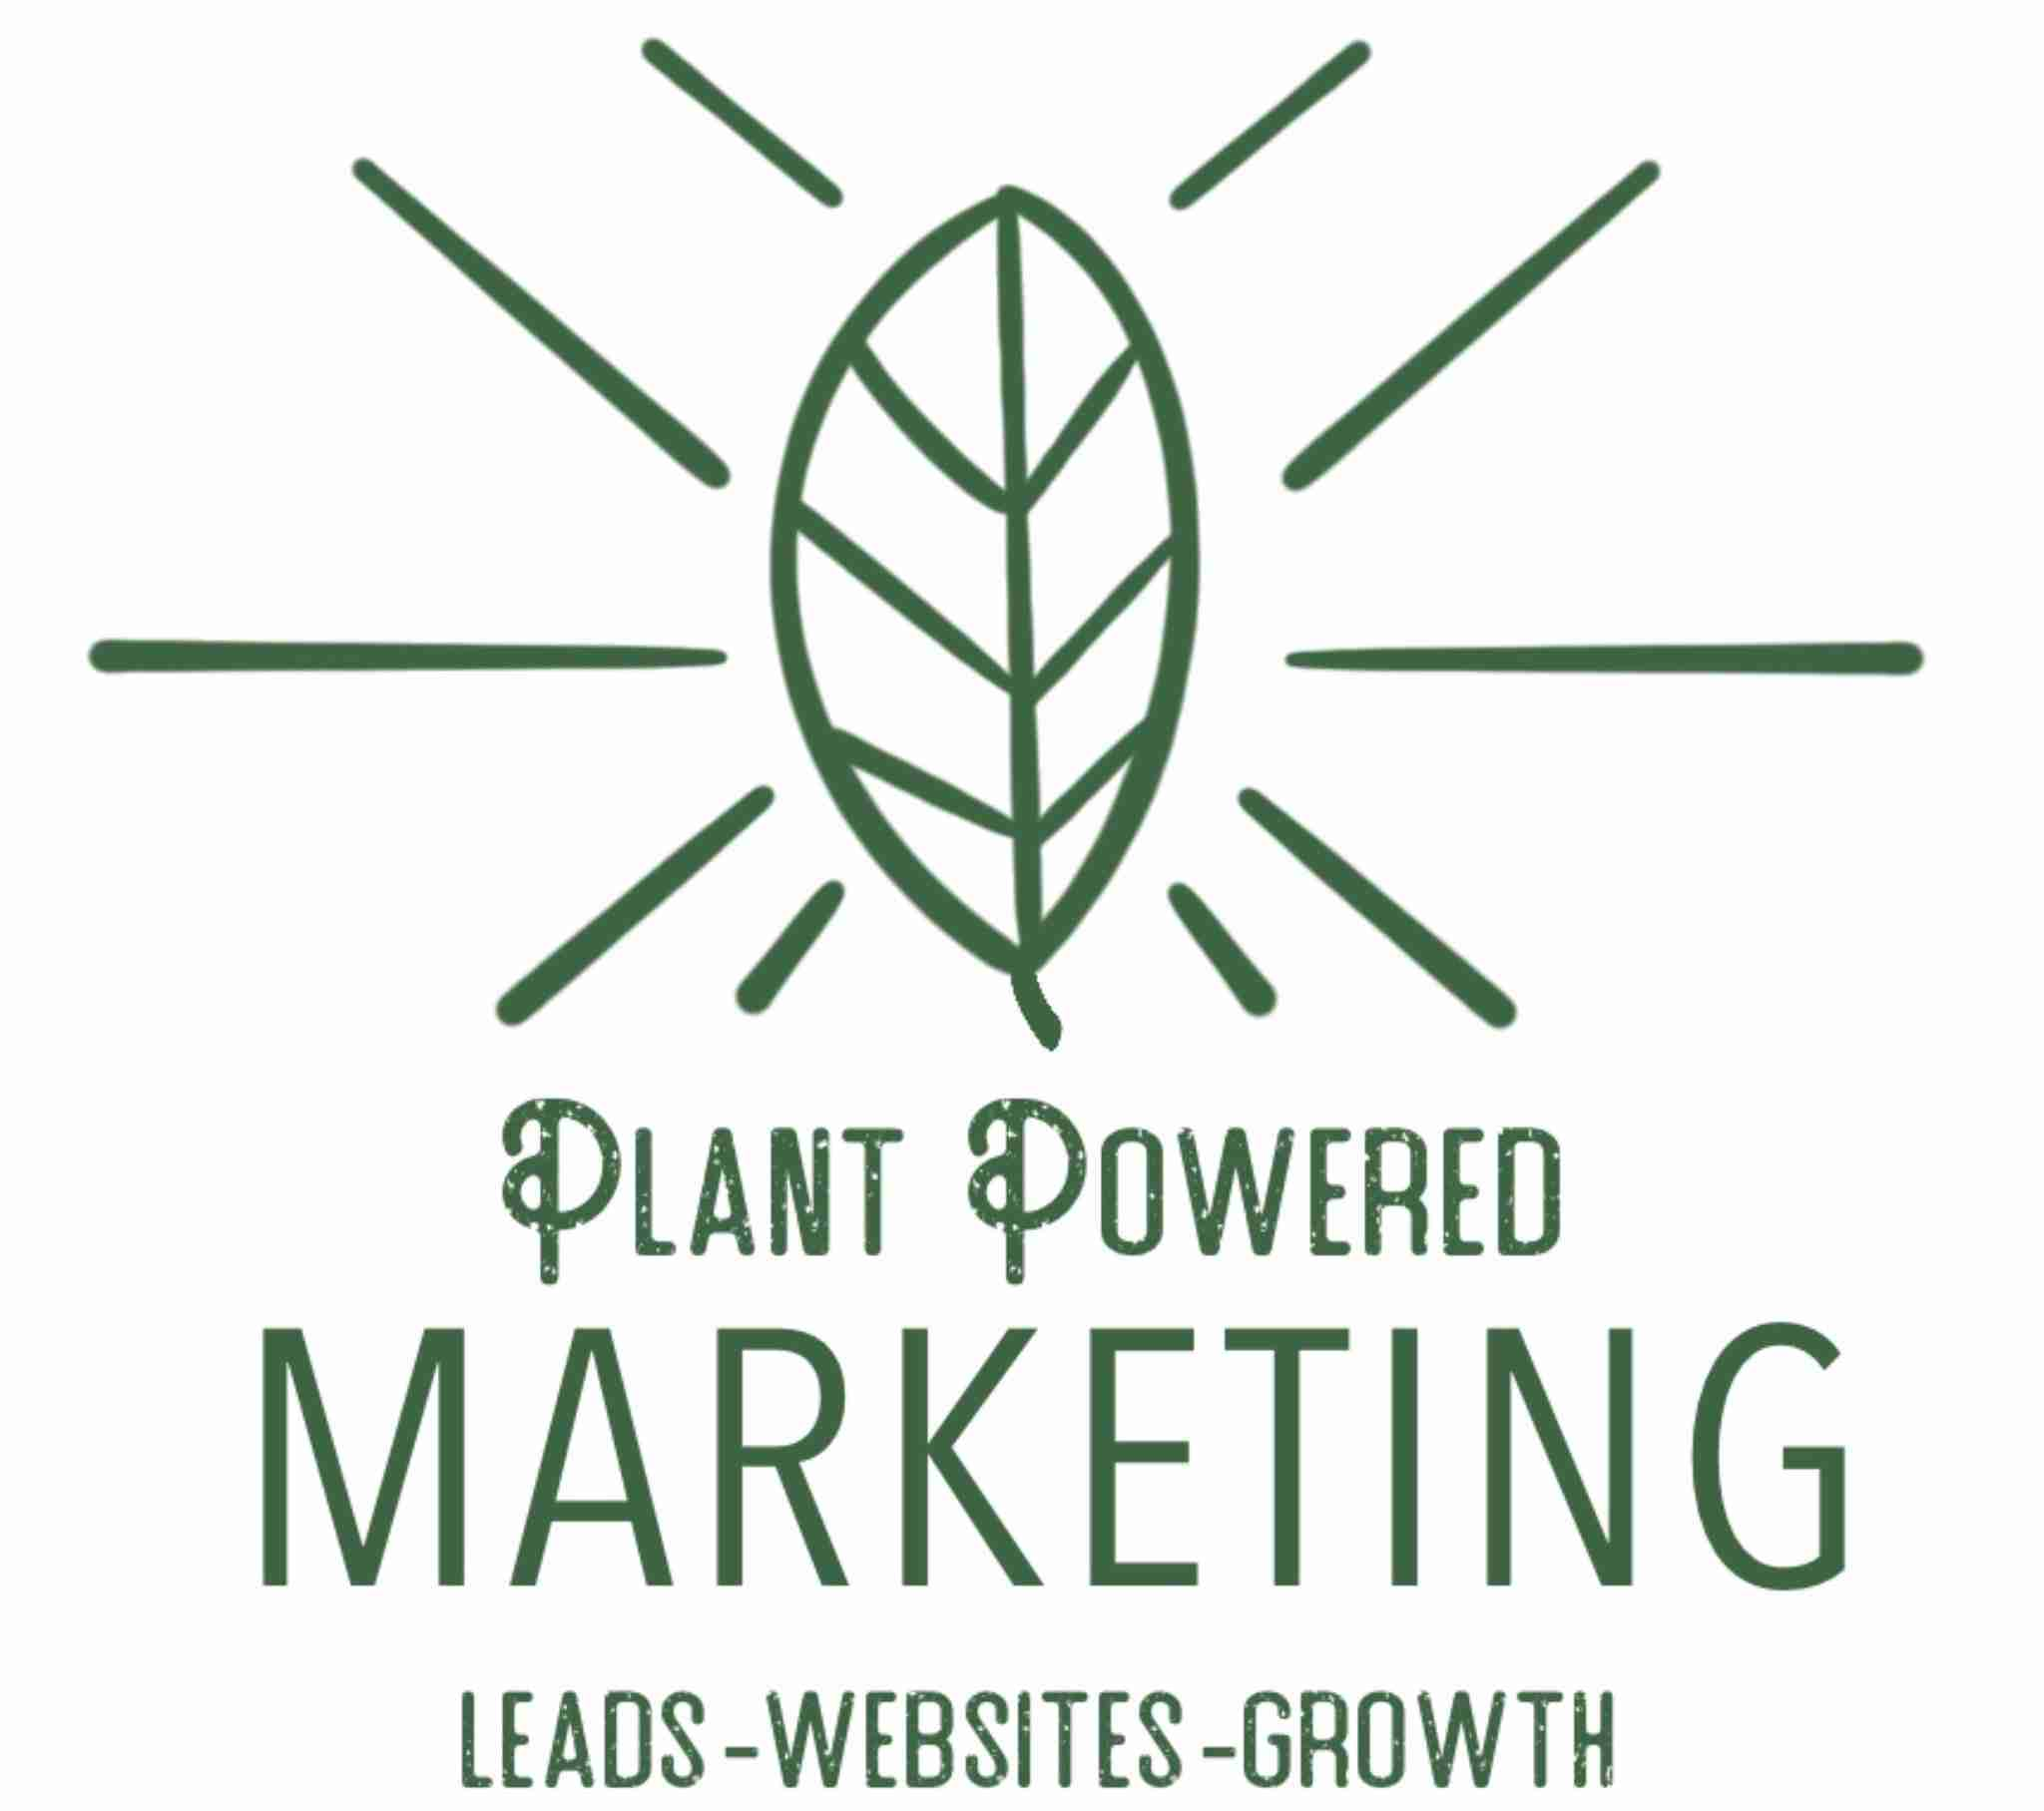 Plant Powered Marketing